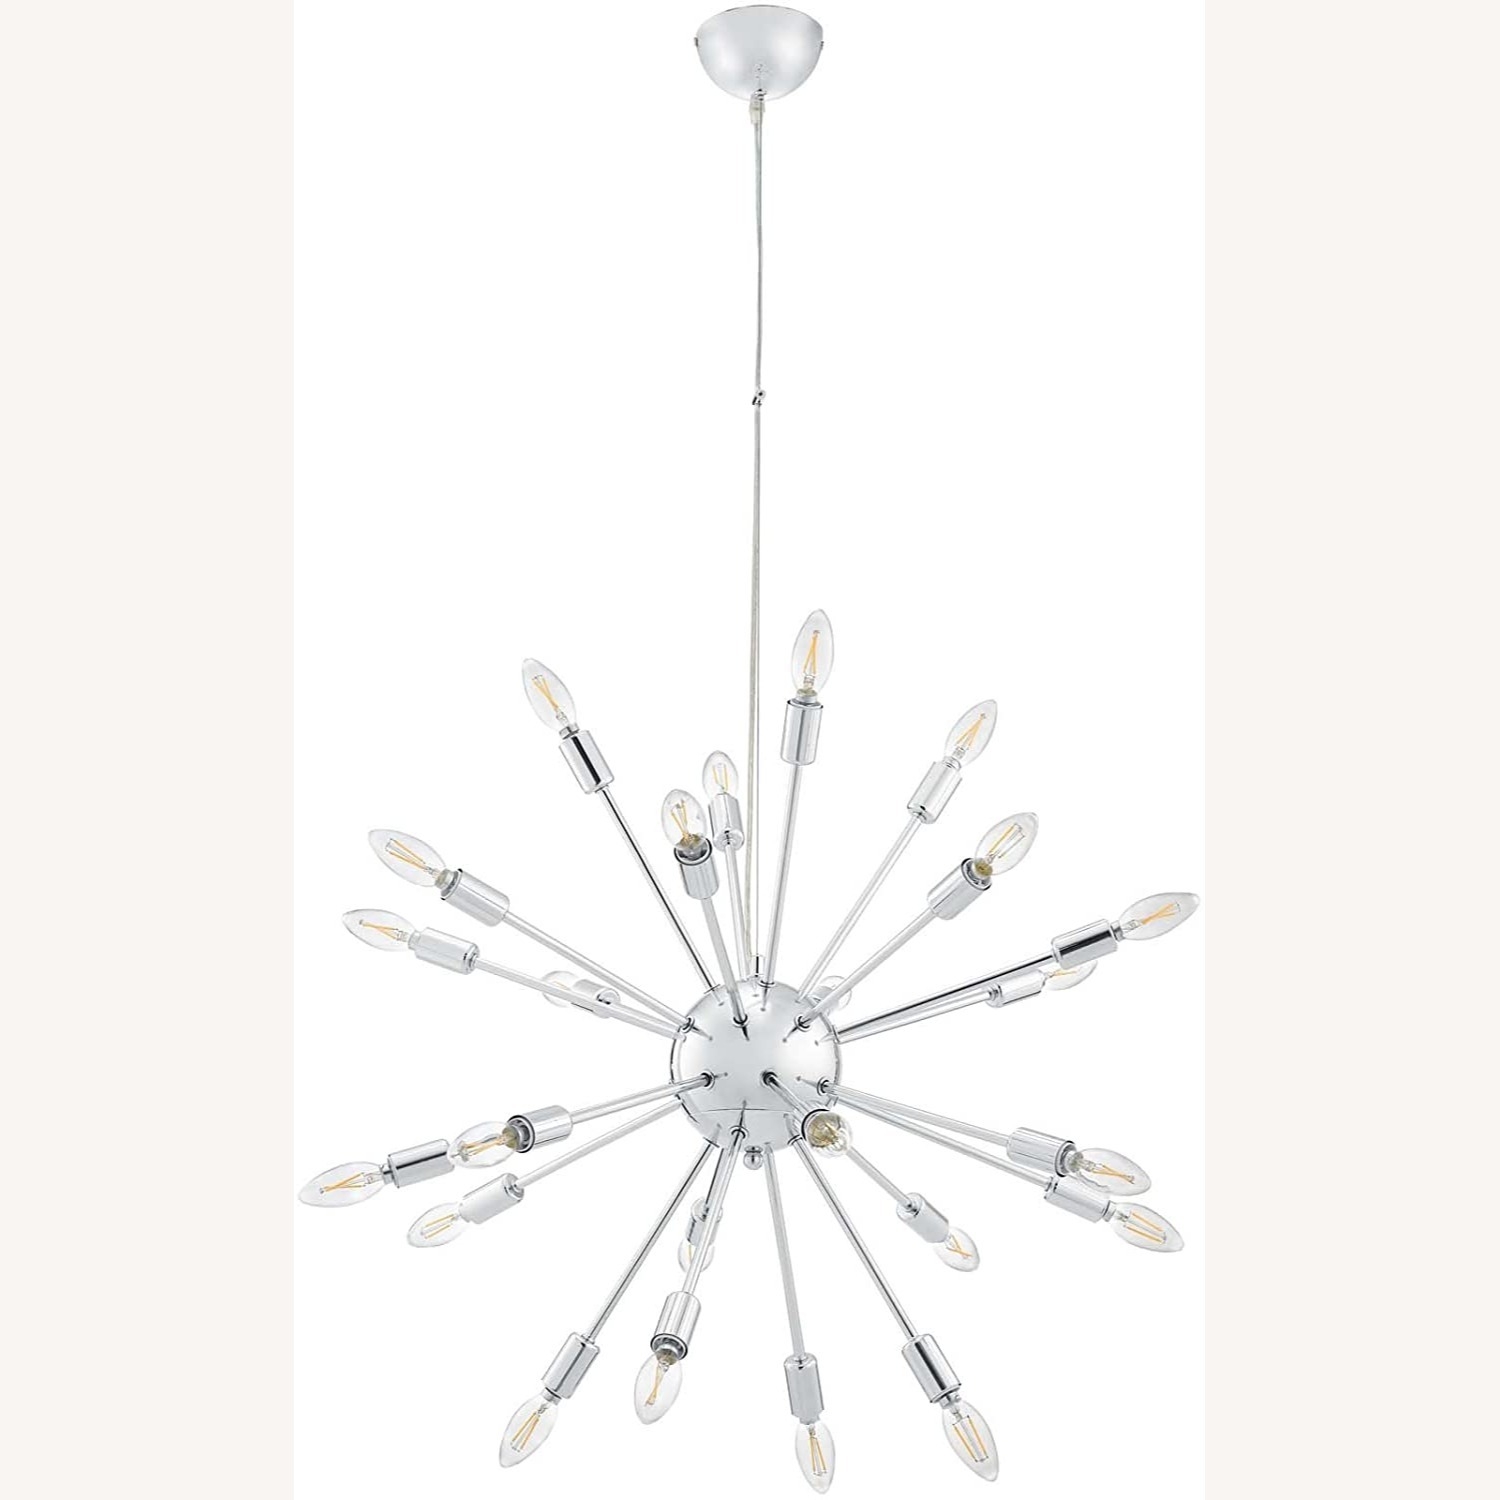 Modern Chandelier In Chrome-Plated Steel - image-0